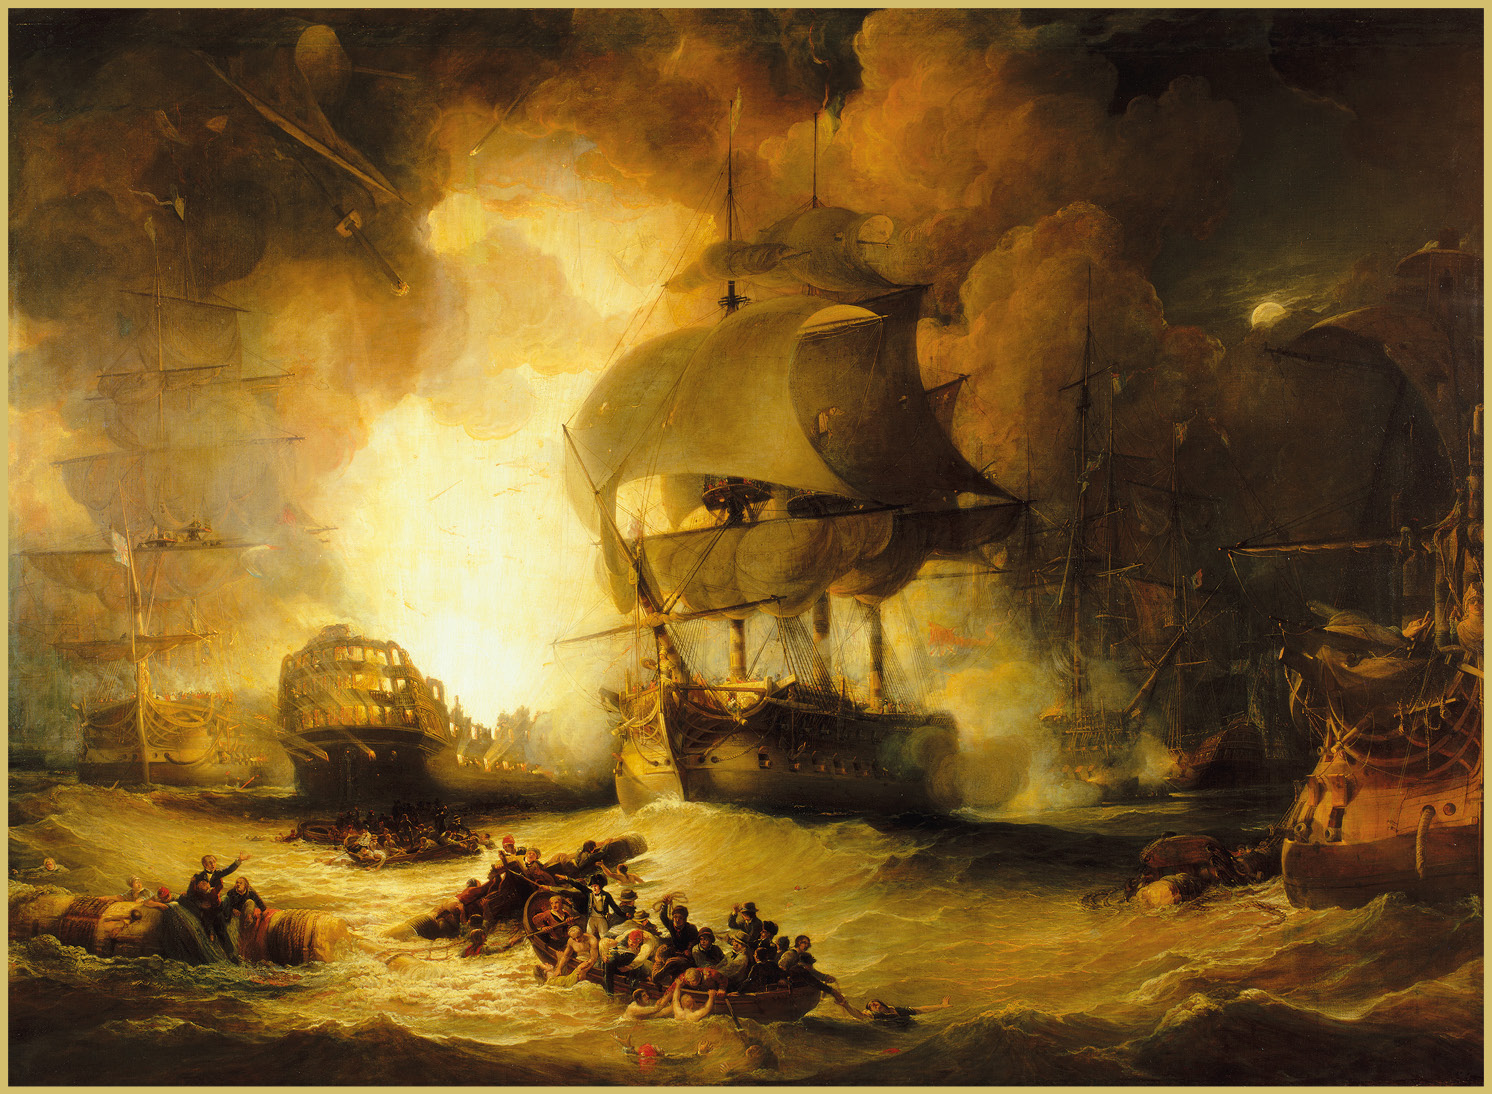 BELOW The dramatic climax of the Battle of the Nile: the French ship L'Orient, the biggest ship in the world at the time, explodes when fire reaches the magazine.